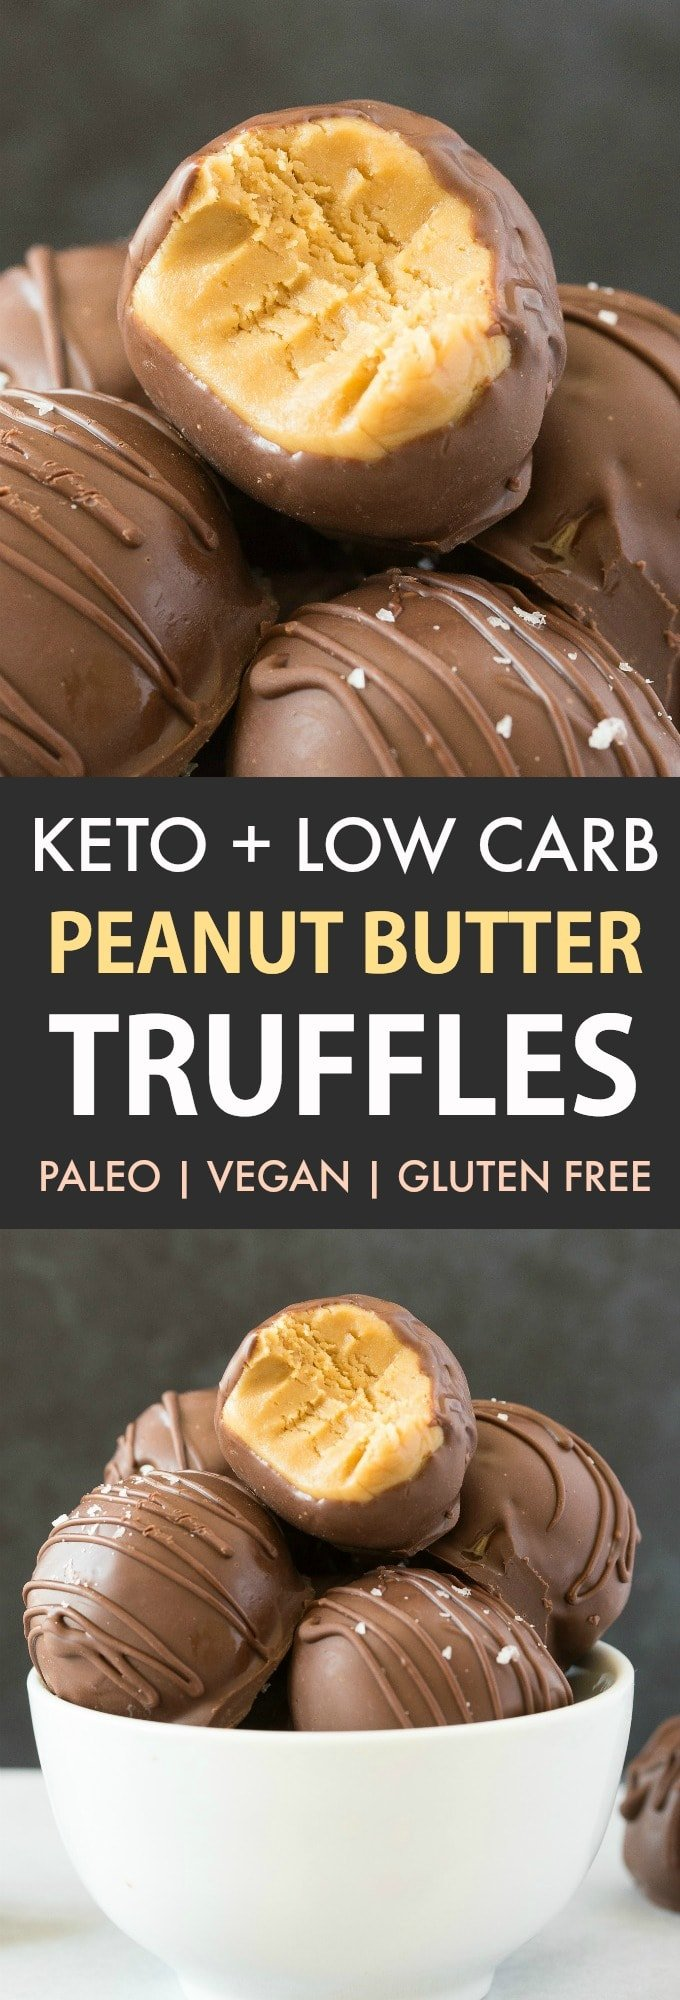 Keto Chocolate Peanut Butter Truffles in a white bowl.